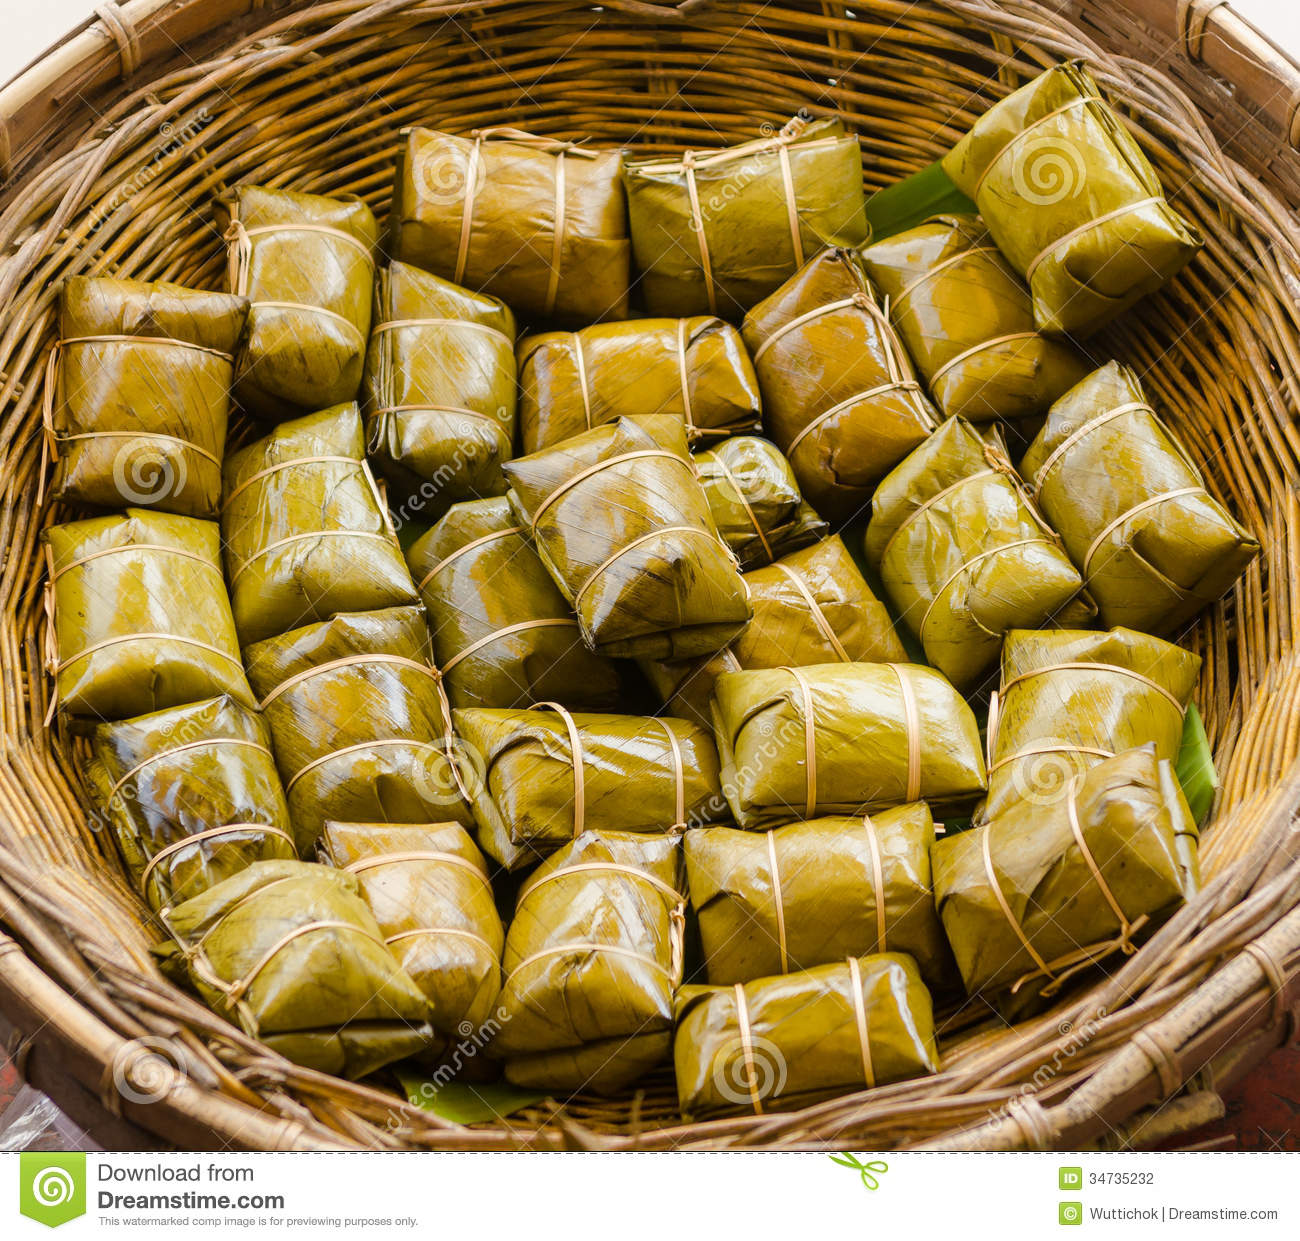 glutinous rice steamed in banana leaf stock photography. Black Bedroom Furniture Sets. Home Design Ideas